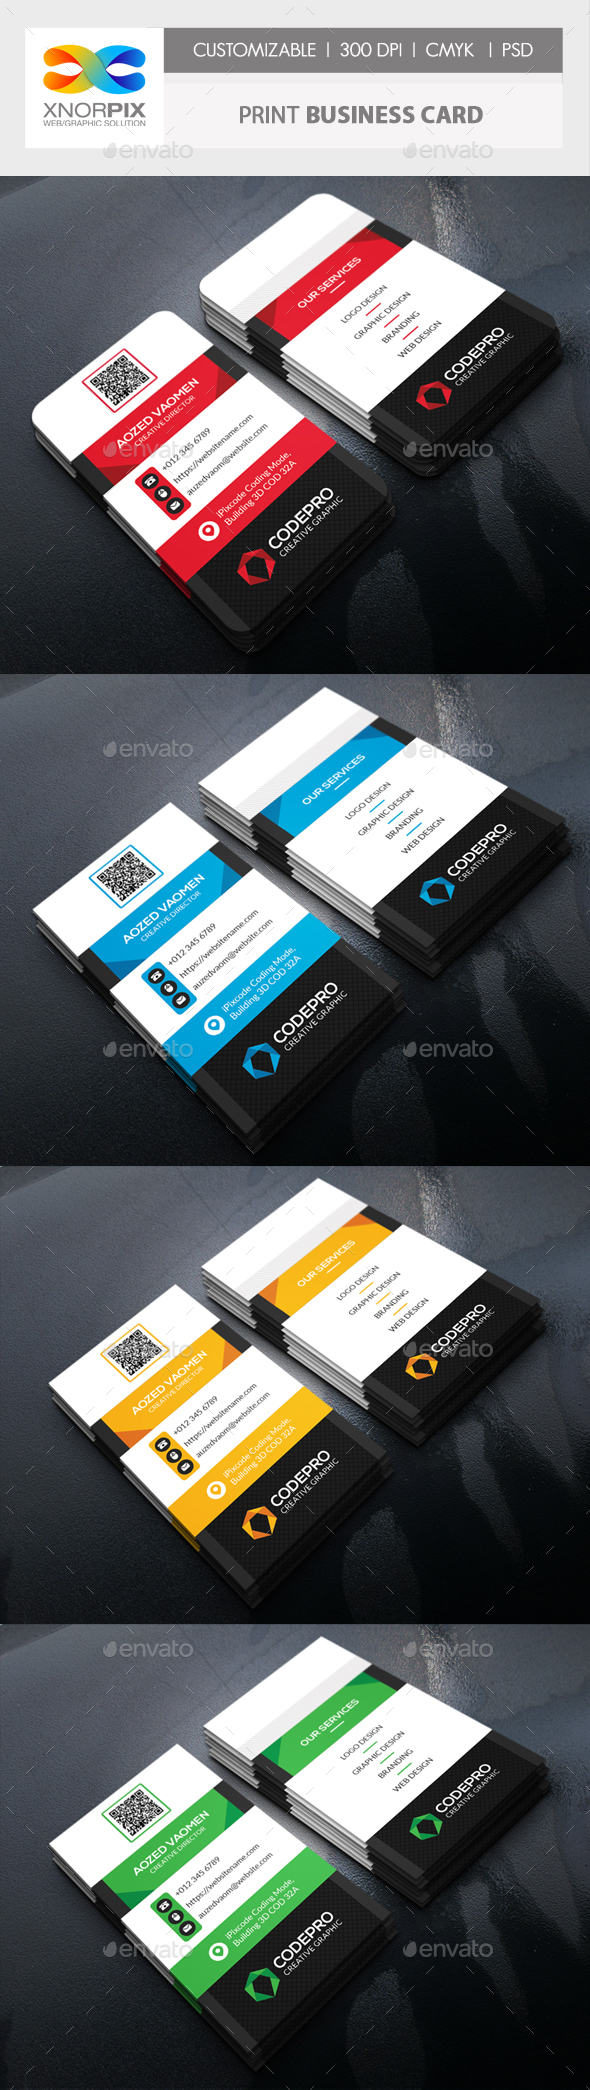 GraphicRiver Print Business Card 20286780